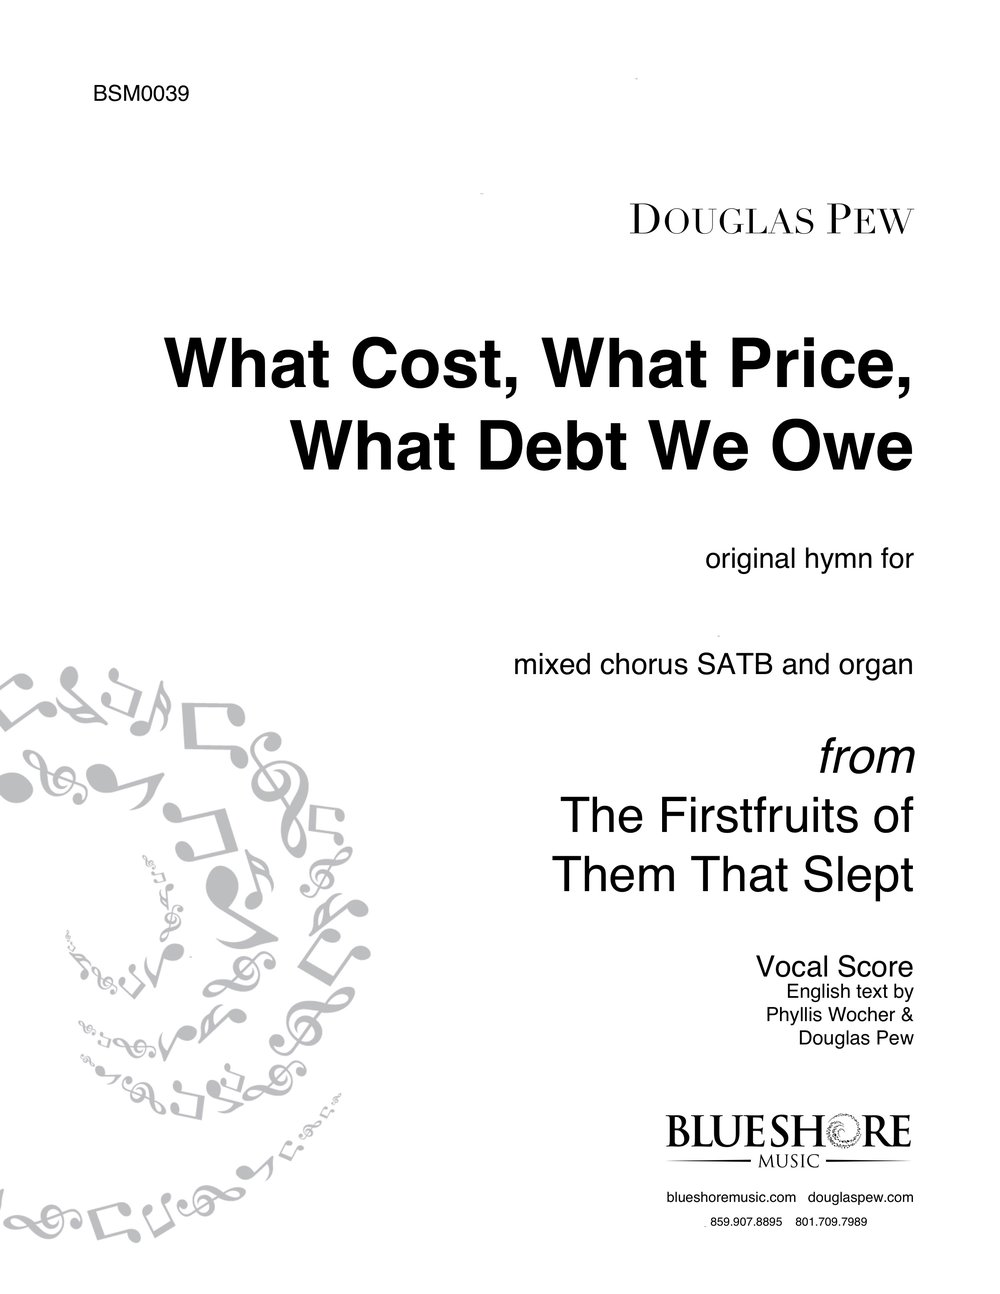 What Cost, What Price, What Debt We Owe